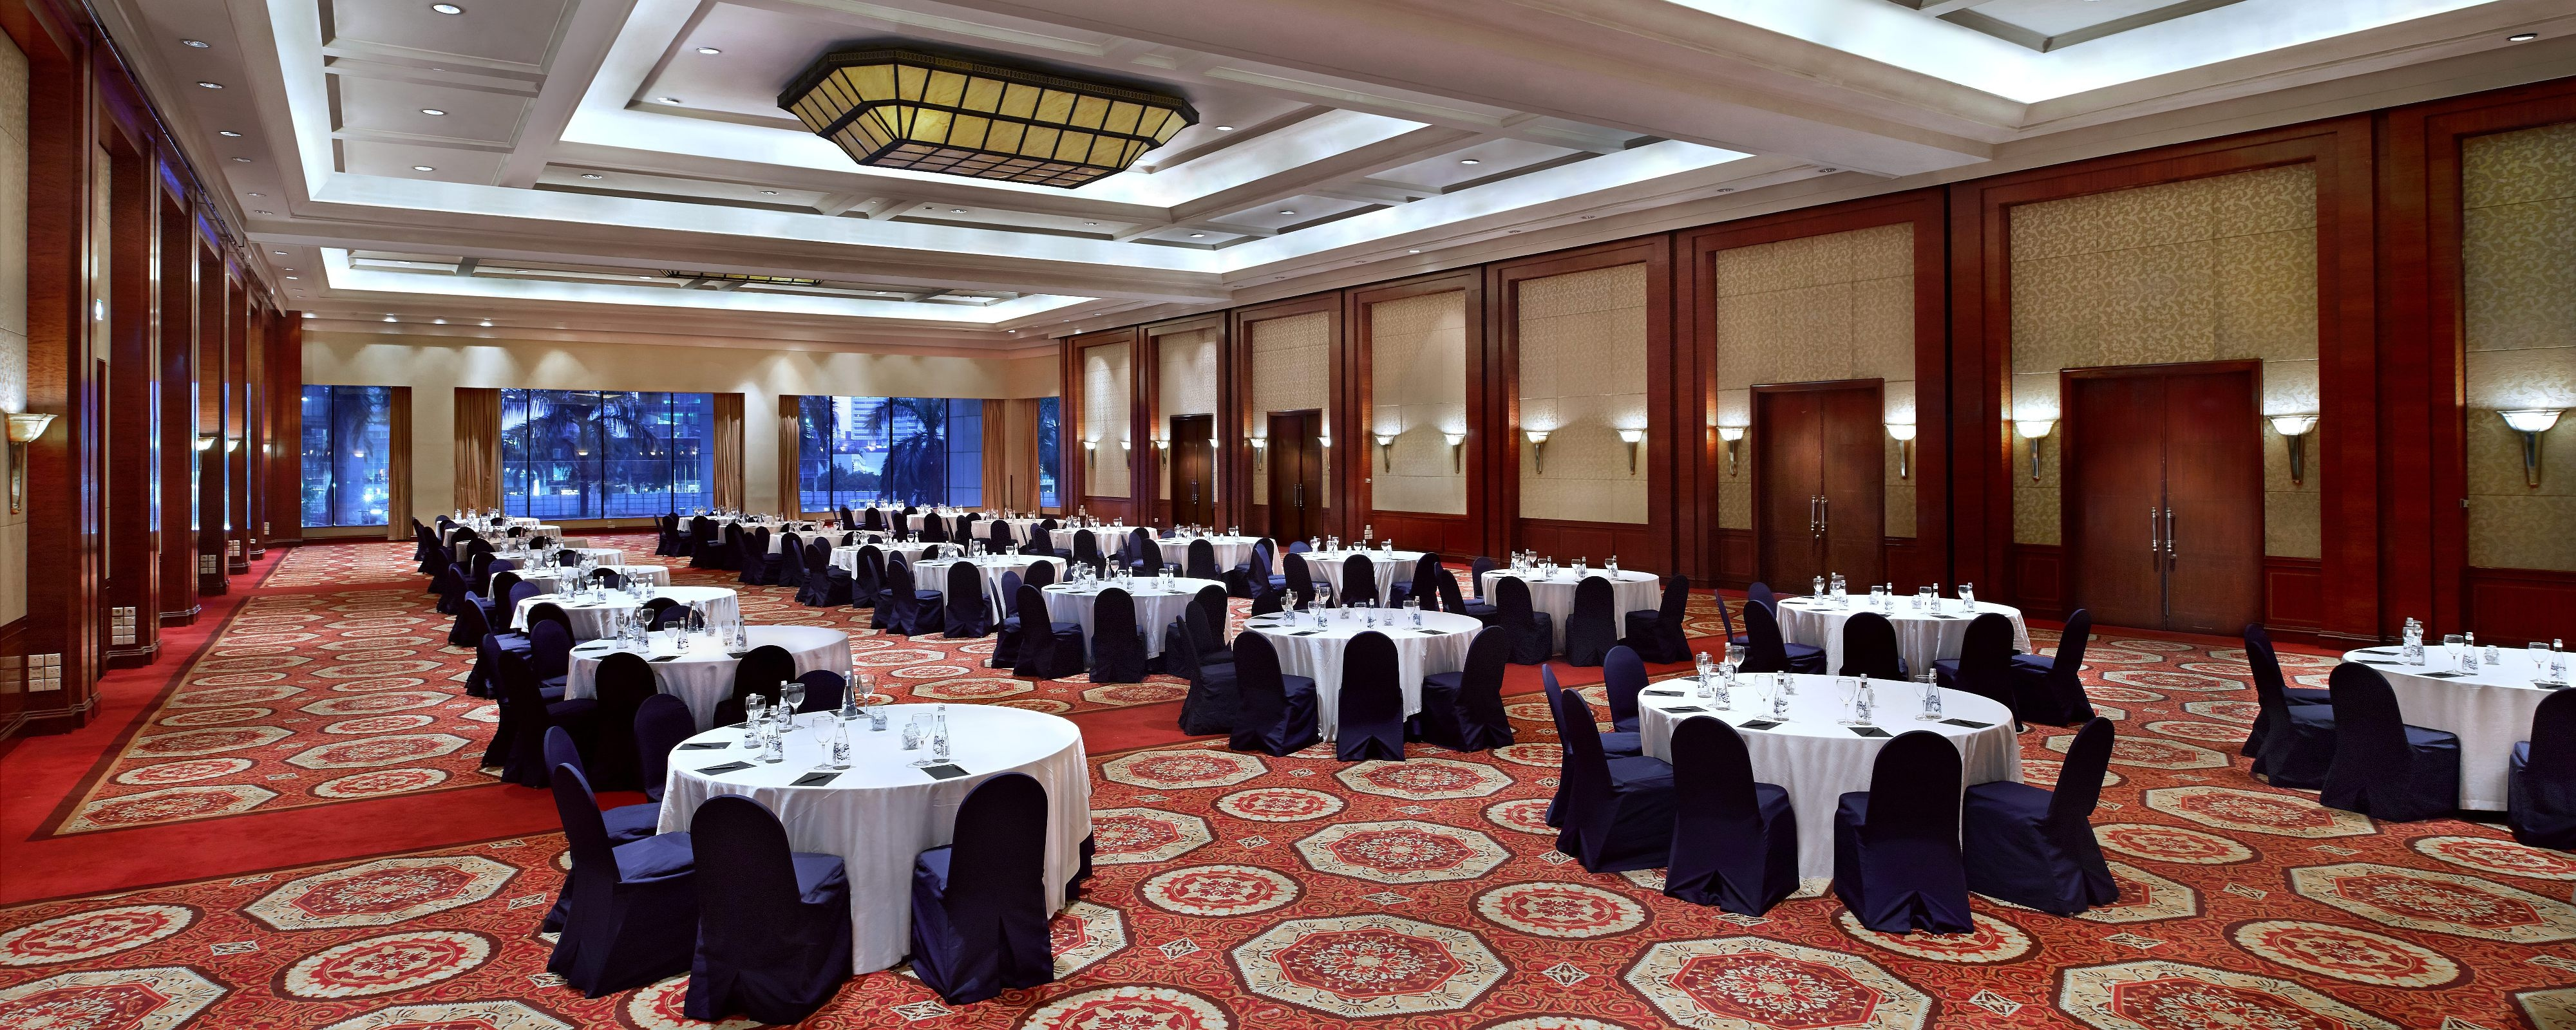 Business Meeting And Event Space In Jakarta